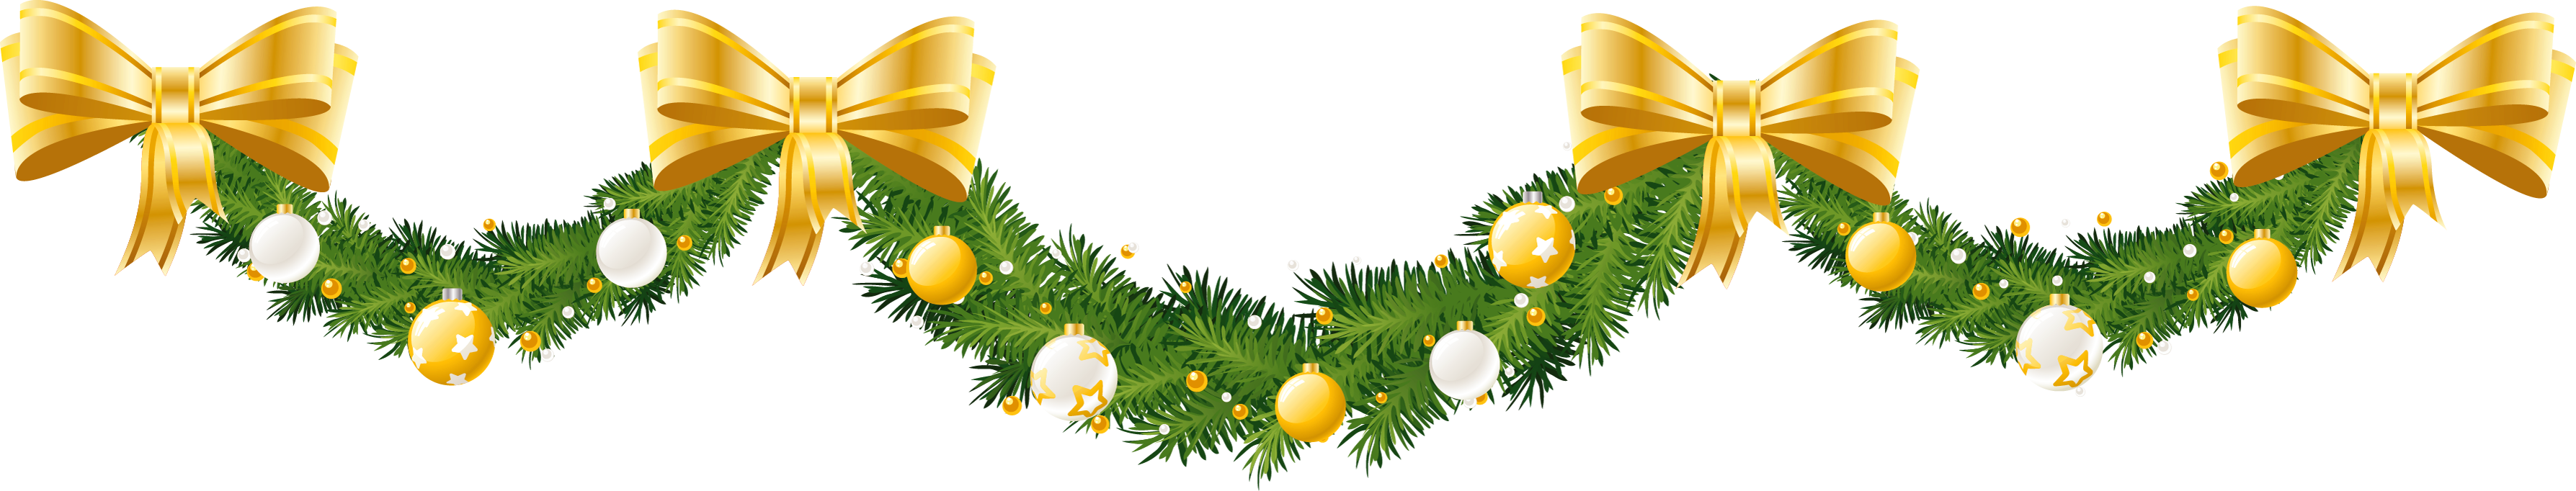 Gold, Star, Garland, Opening Png Transparent Image